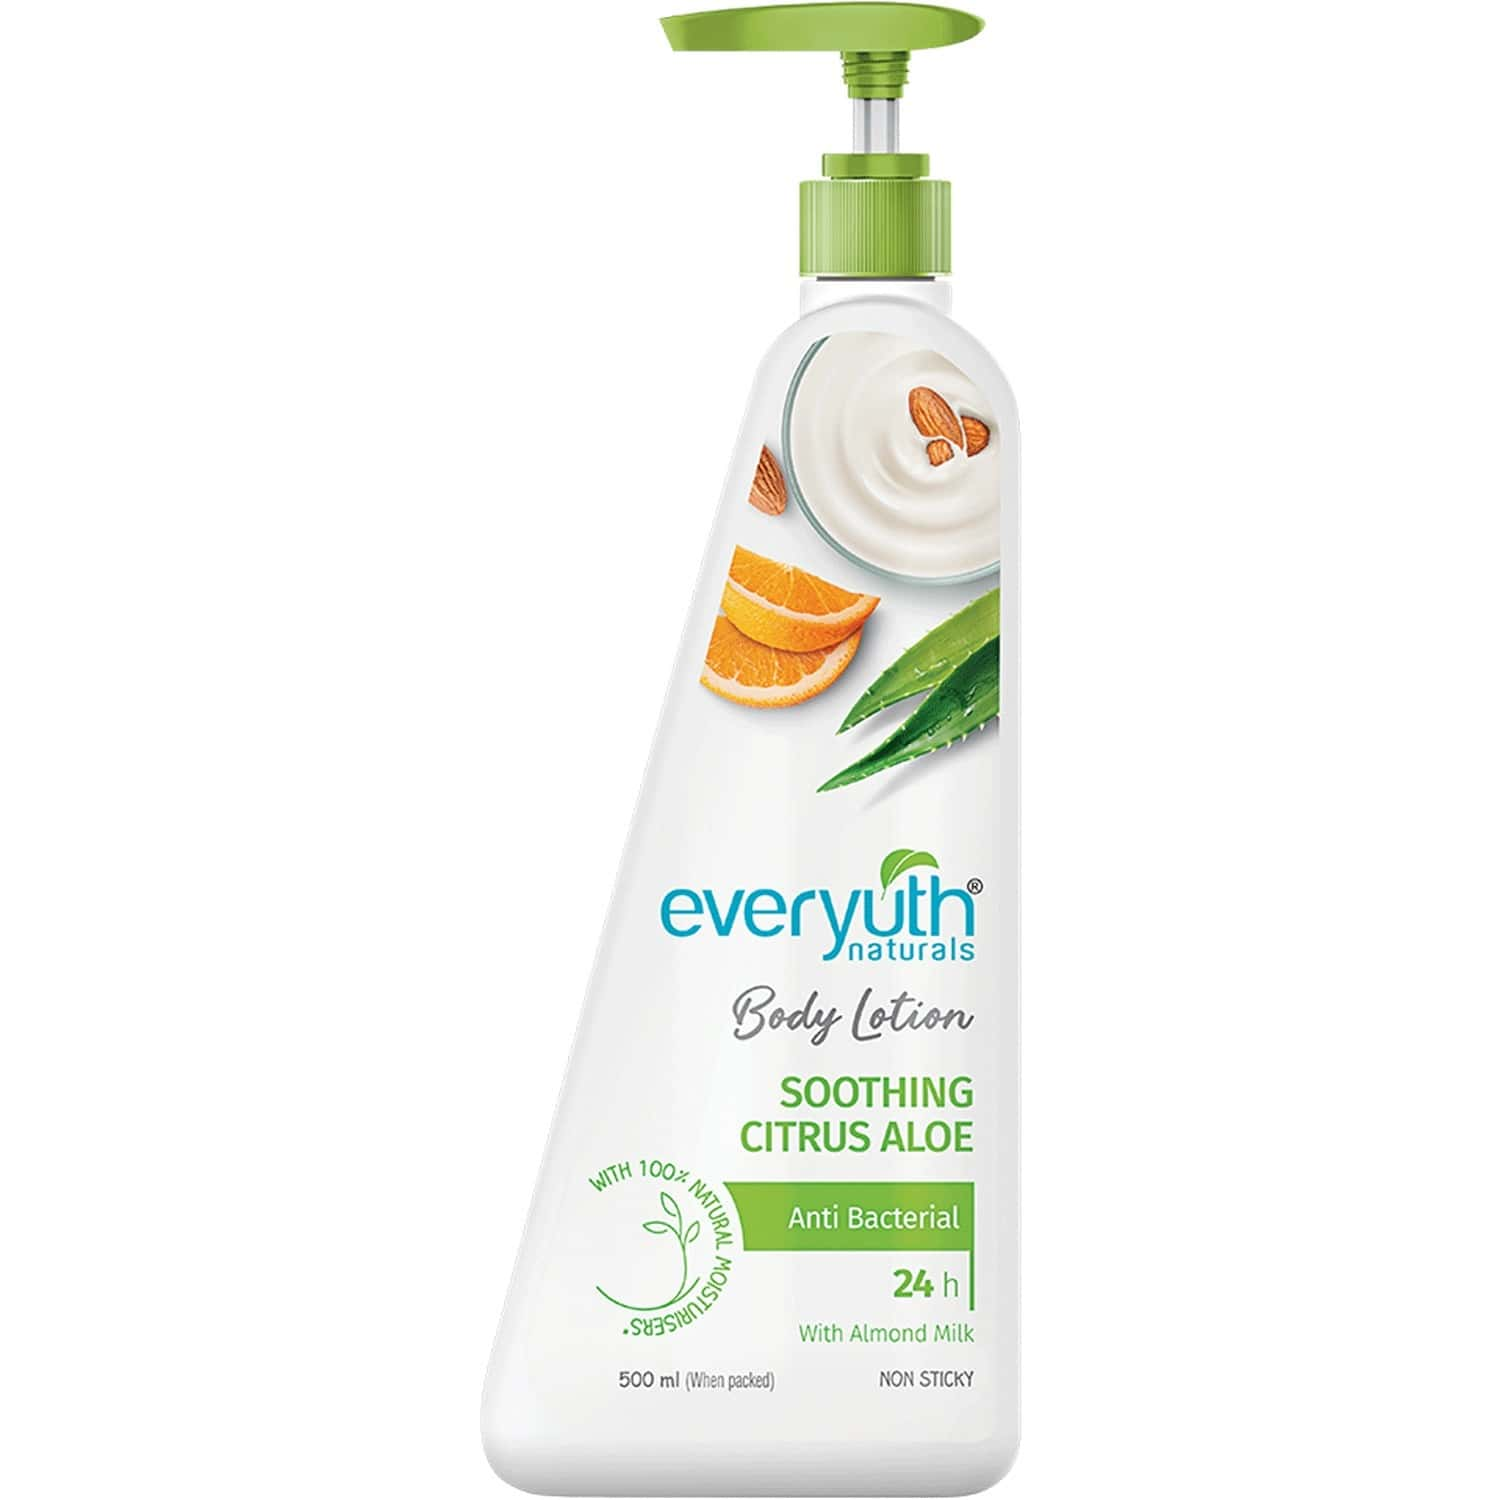 Everyuth Naturals Body Lotion Soothing Citrus Aloe 500ml